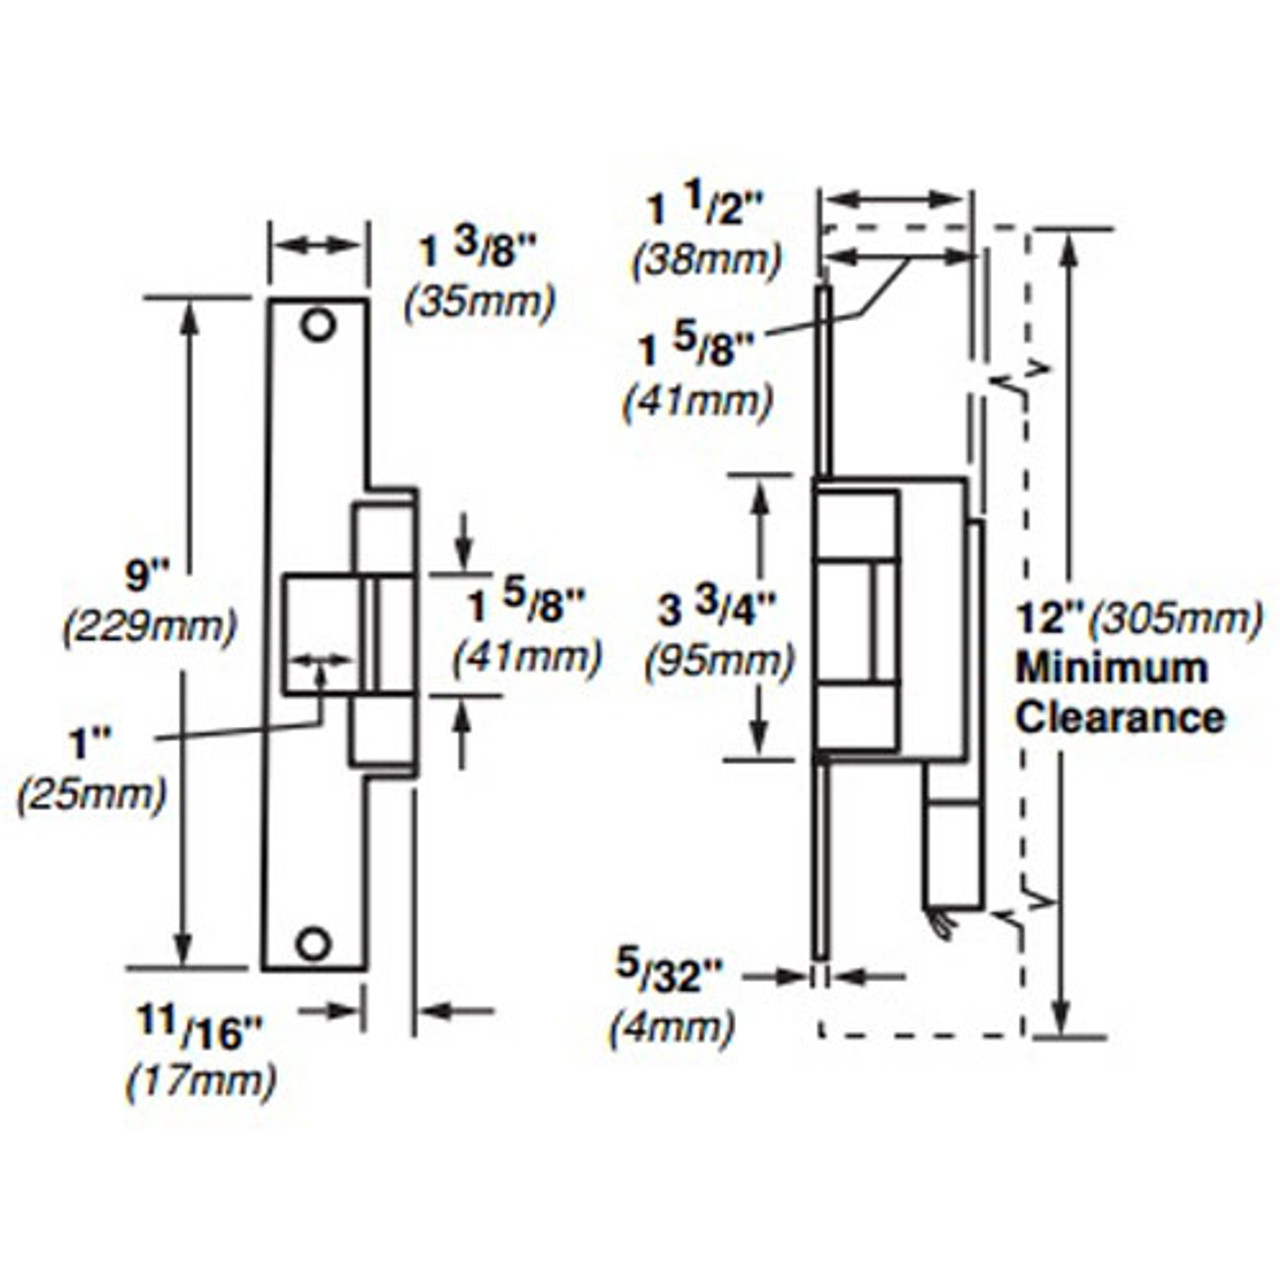 6226-FS-DS-12VDC-US3 Von Duprin Electric Strike for Mortise or Cylindrical Locksets in Bright Brass Finish